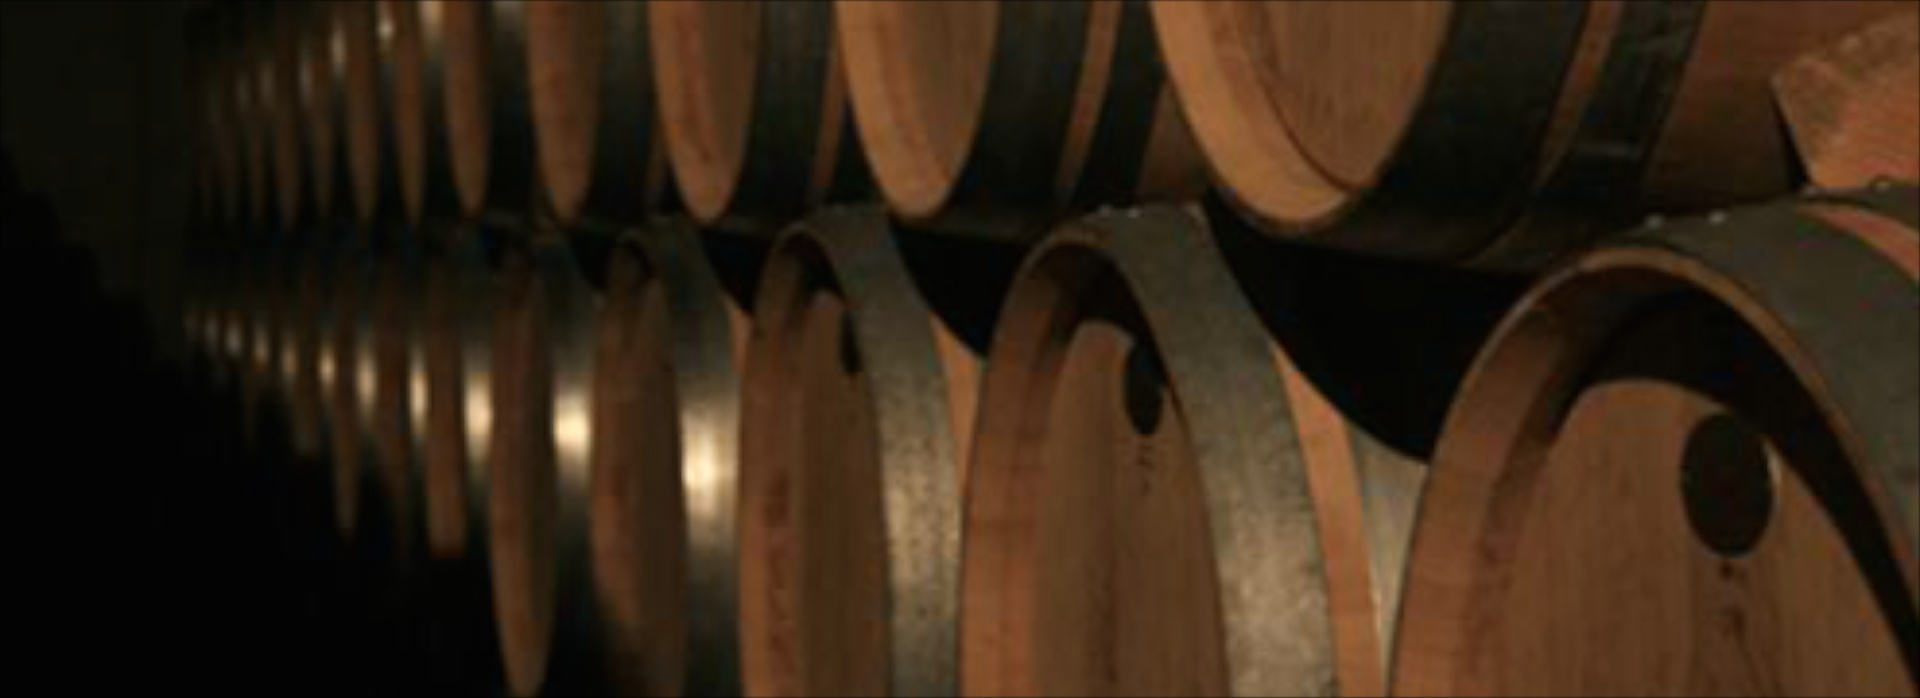 Smith and Whelan wine barrels